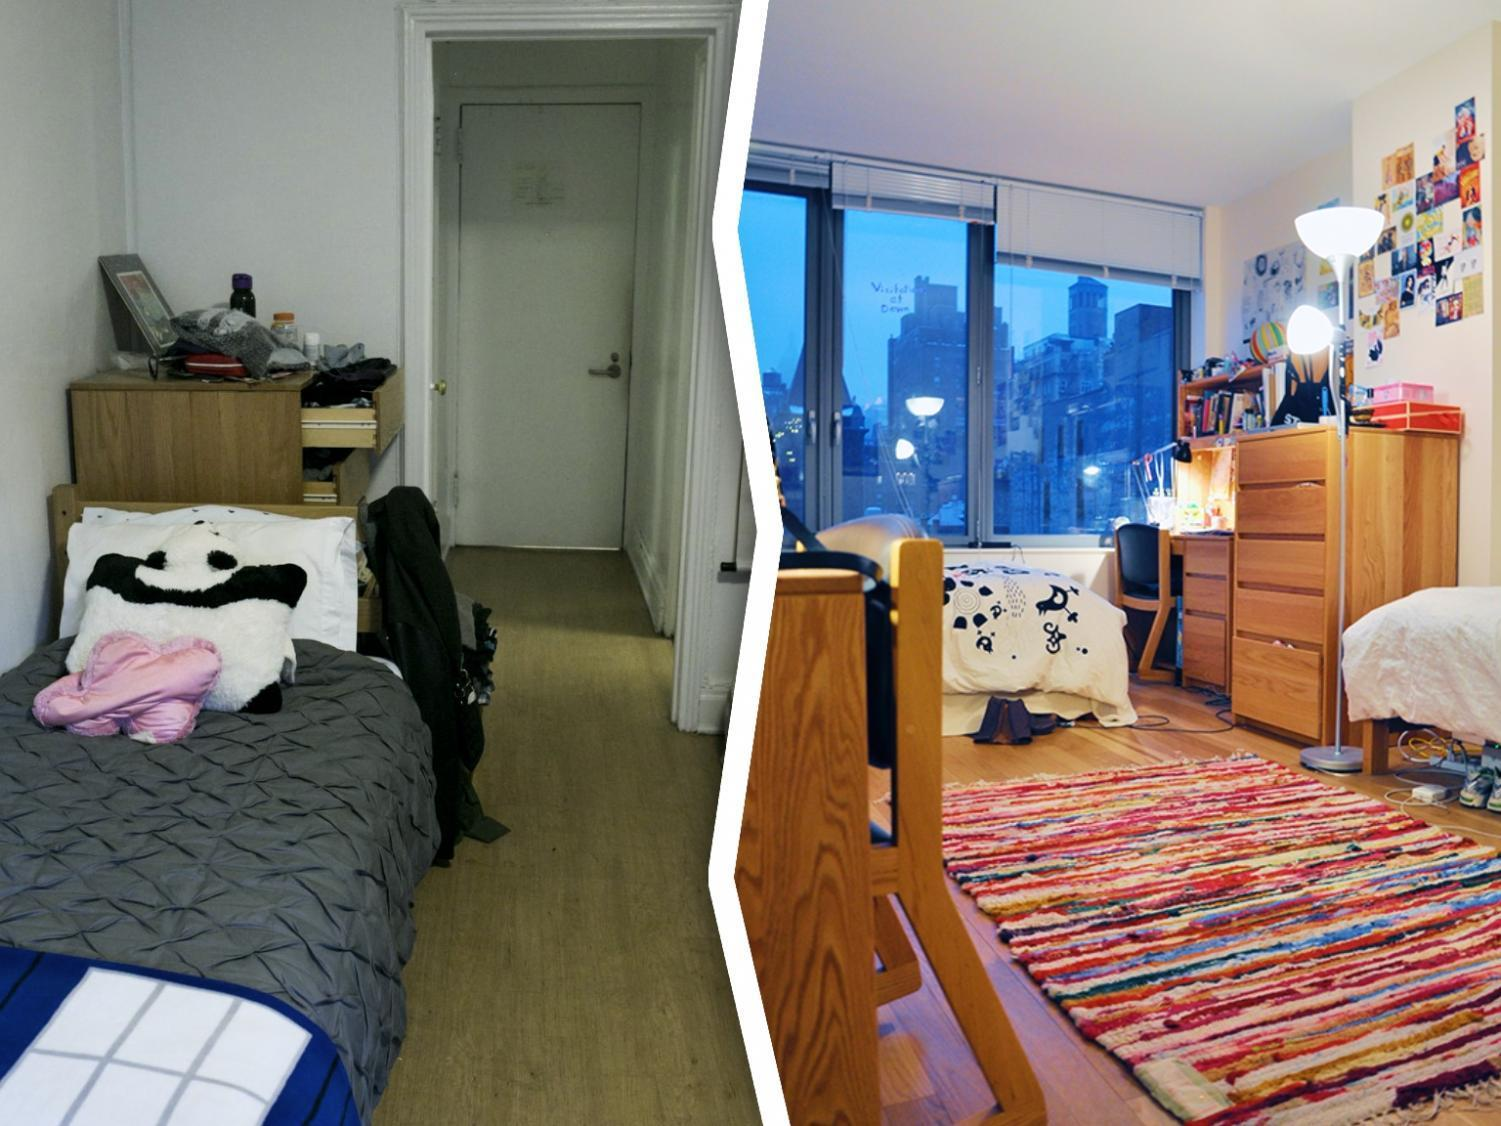 Dorm Hopping From Roaches to Riches | Washington Square News